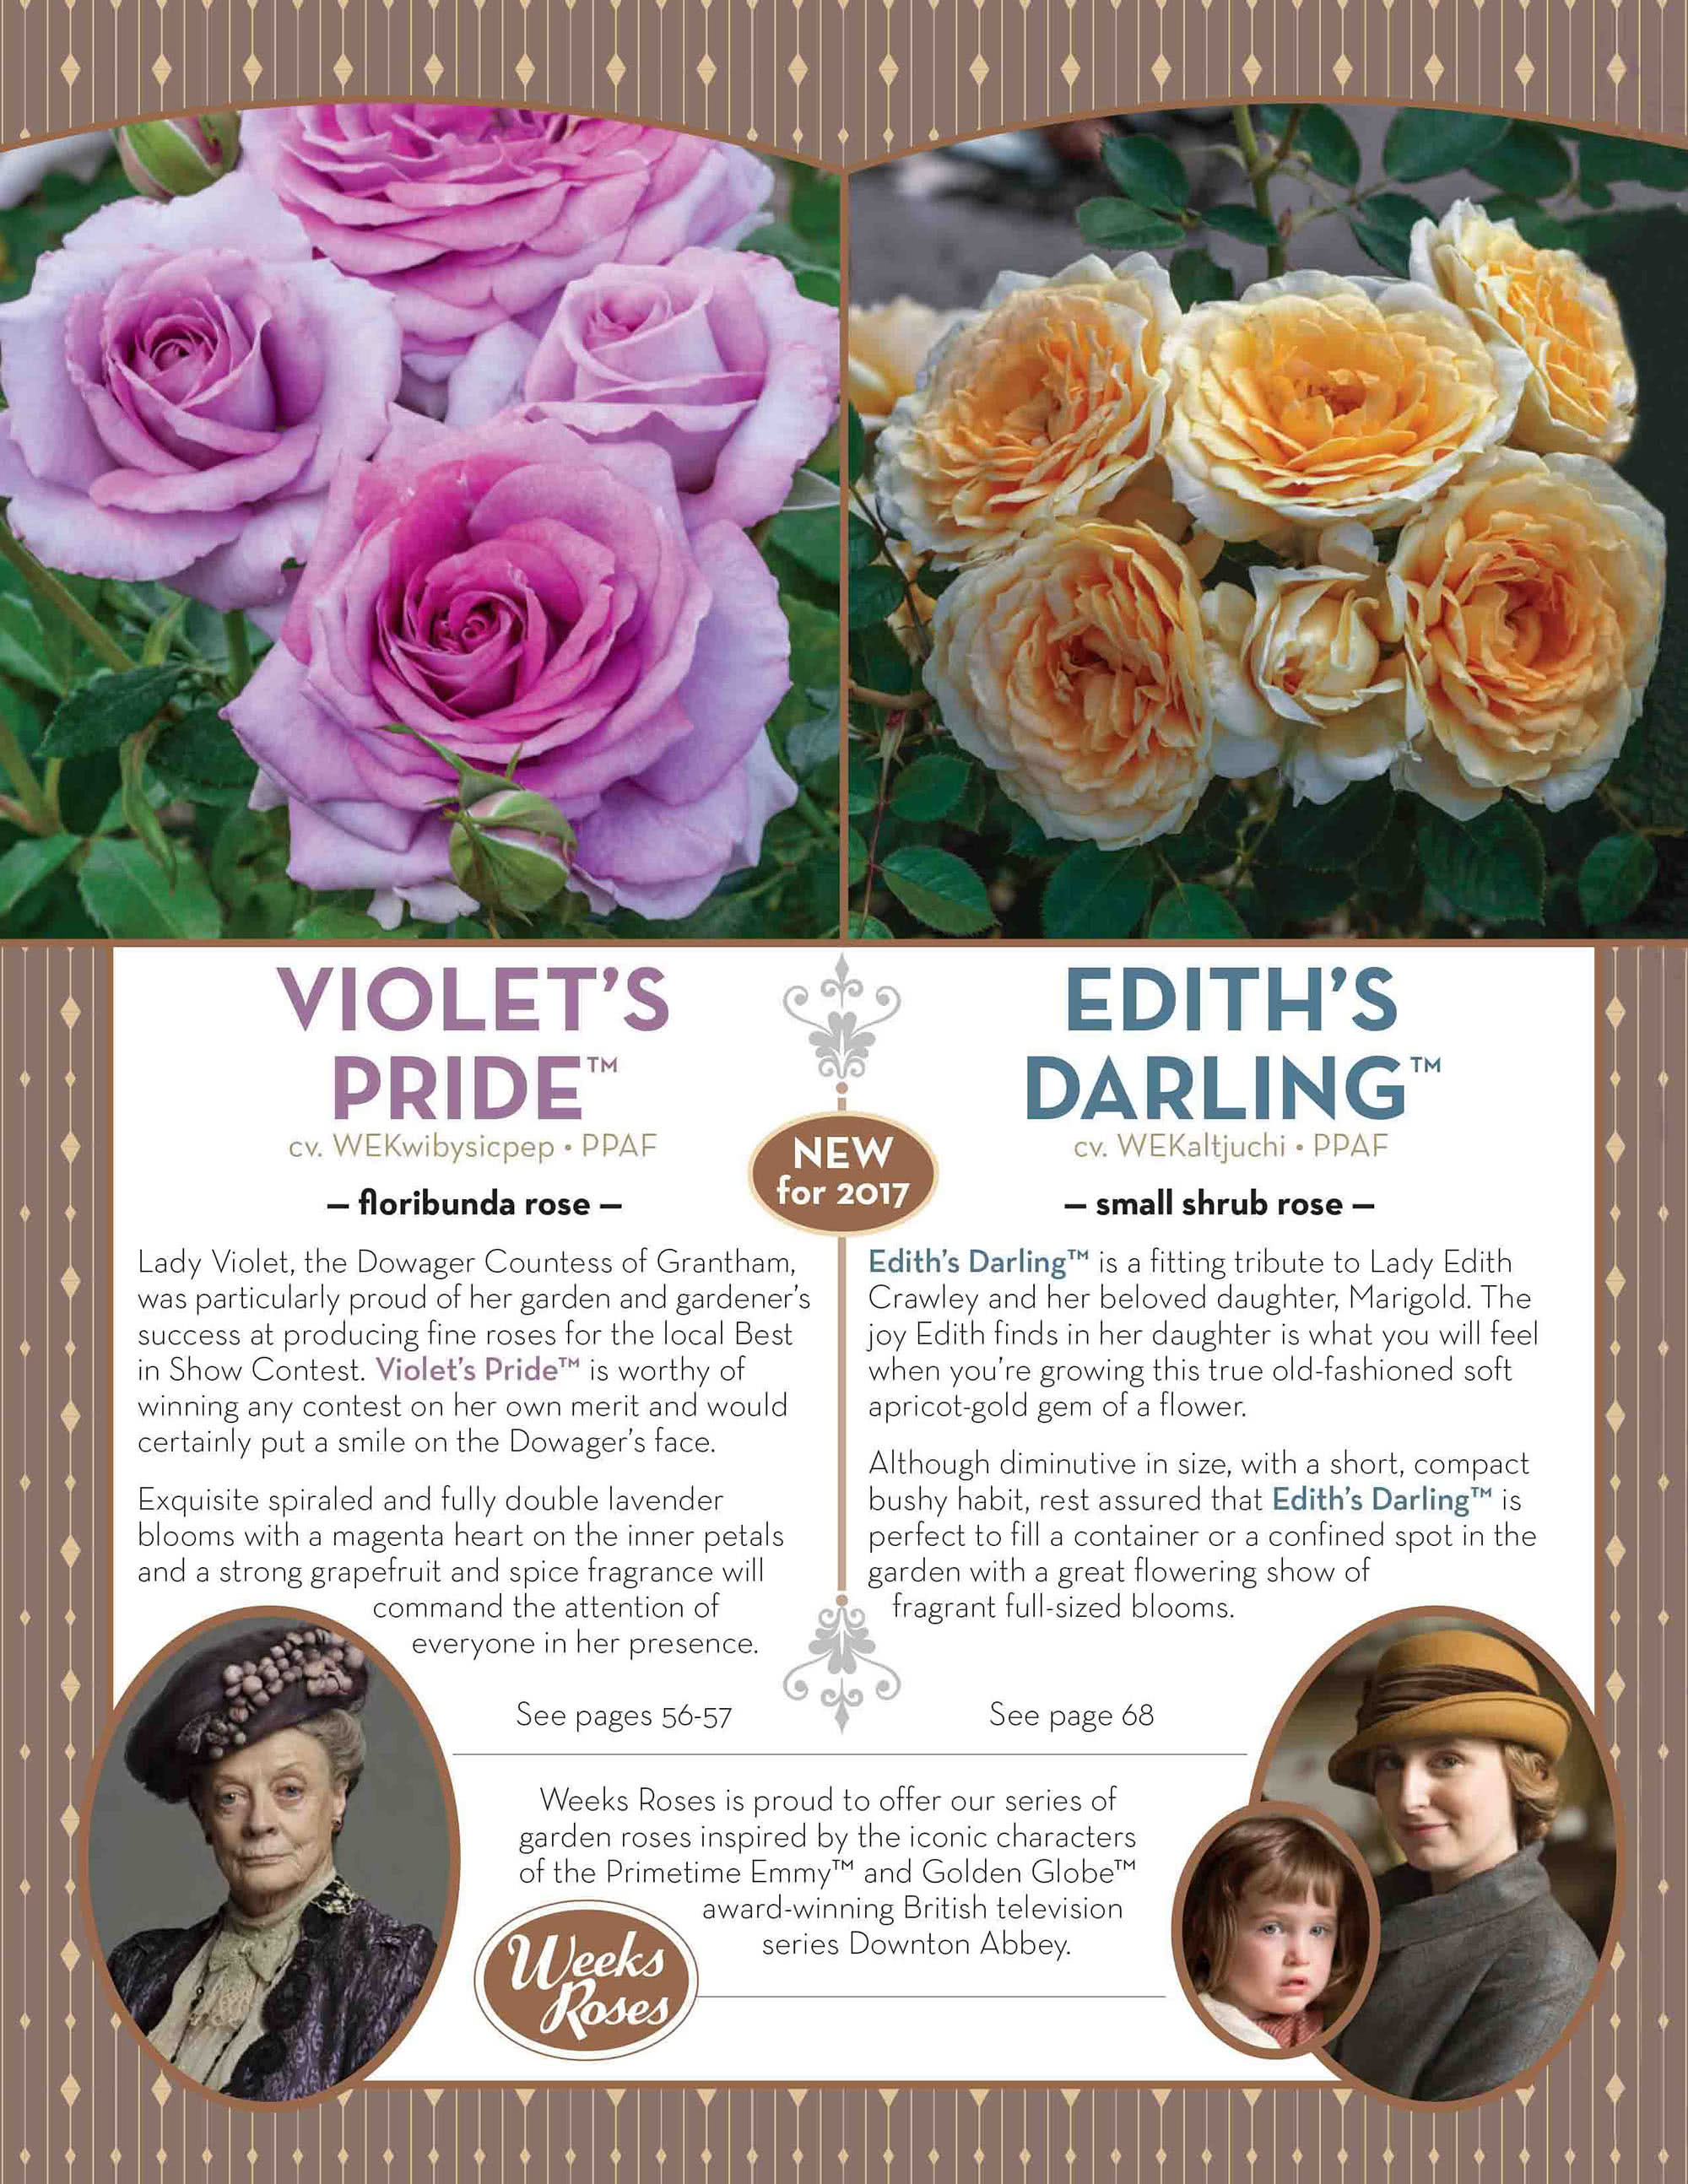 Weeks Roses - Violets Pride Ediths Darling